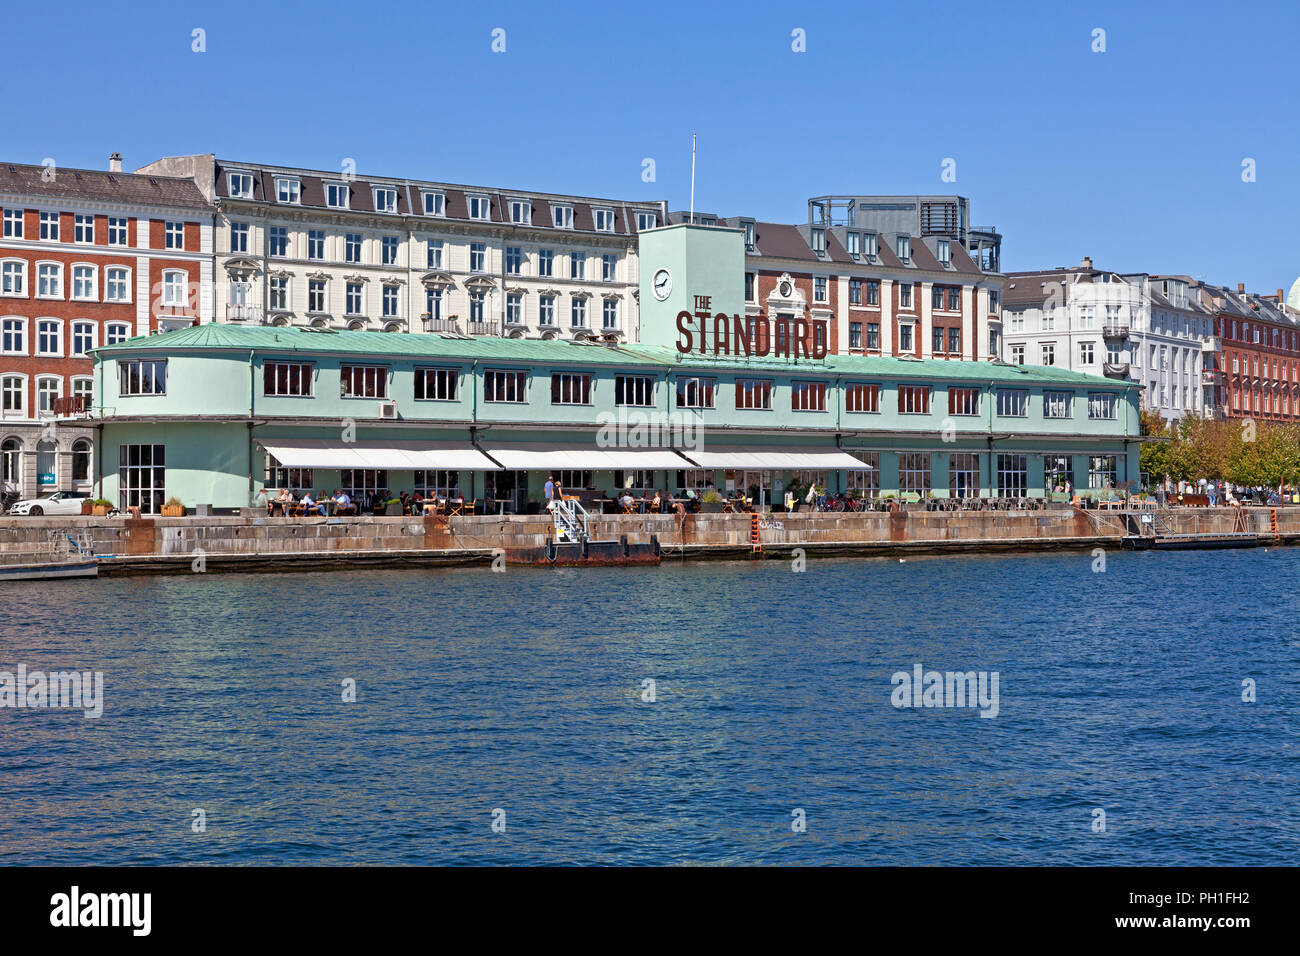 The Standard, a restaurant complex on the Havnegade quay, Copenhagen. The building from 1937 was used by ferry services to Sweden and as custom house.Stock Photo